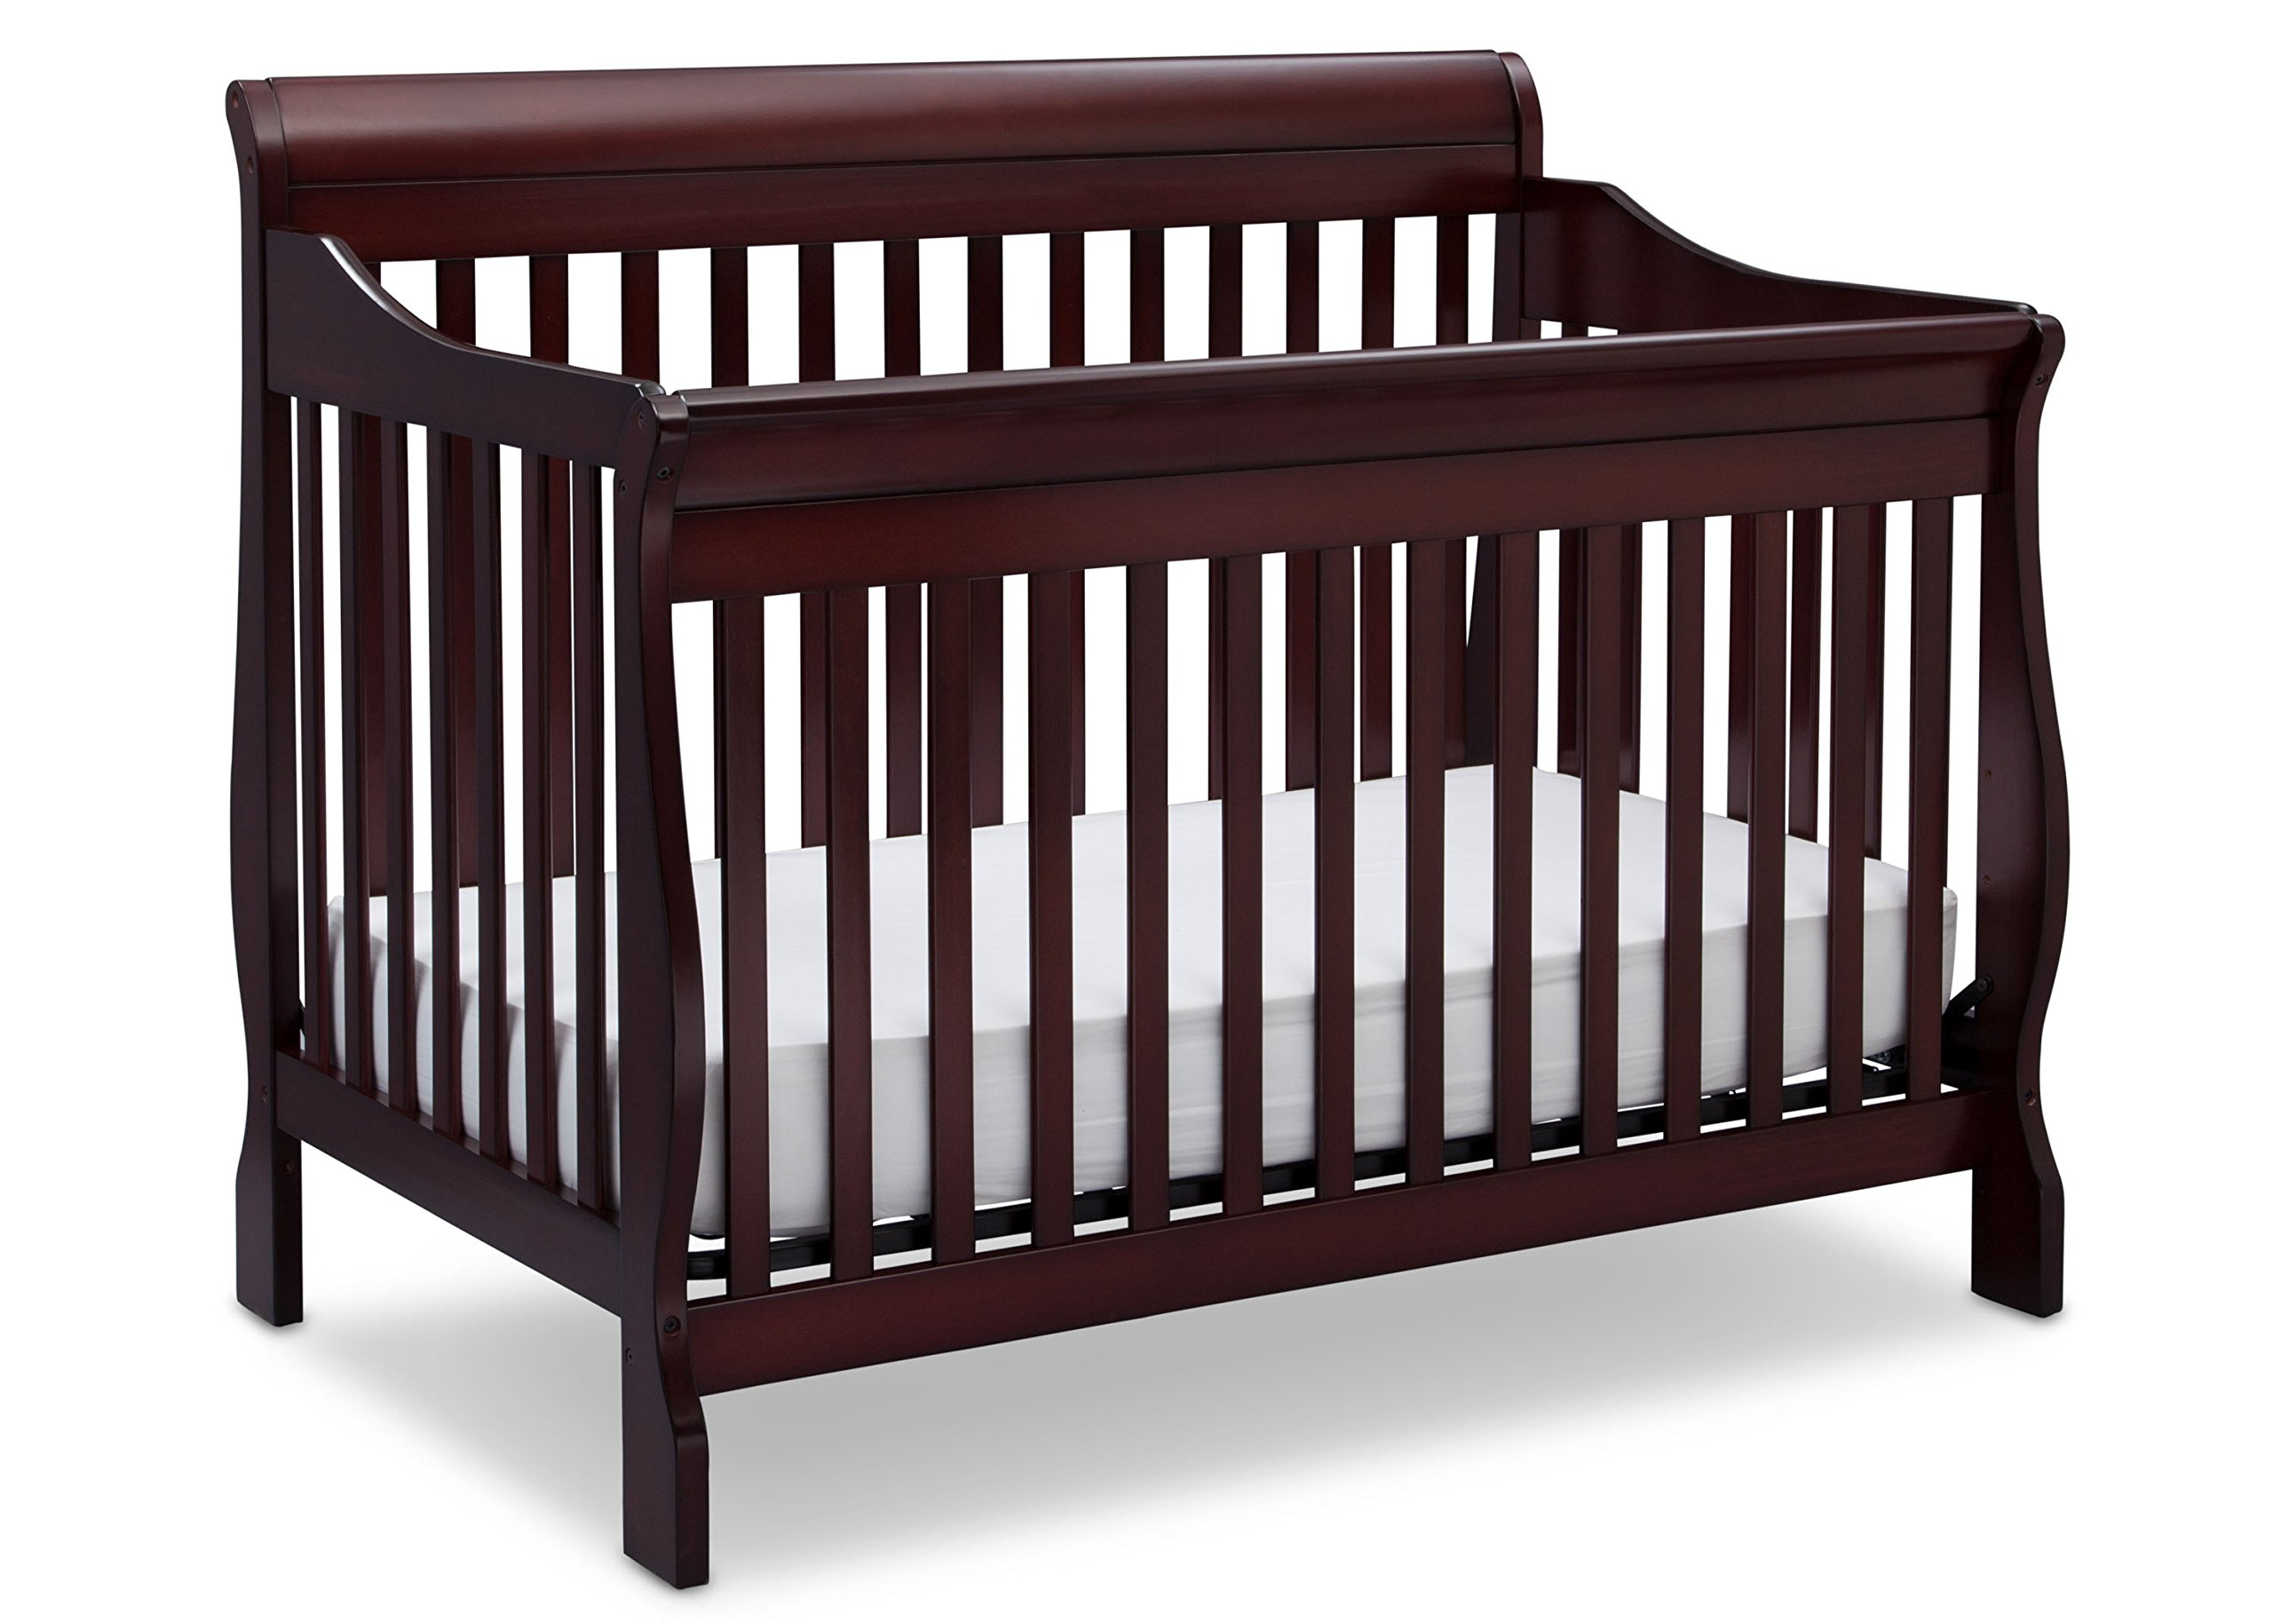 Delta Children Canton 4-in-1 Convertible Crib, Espresso Cherry by Delta Children (Image #1)